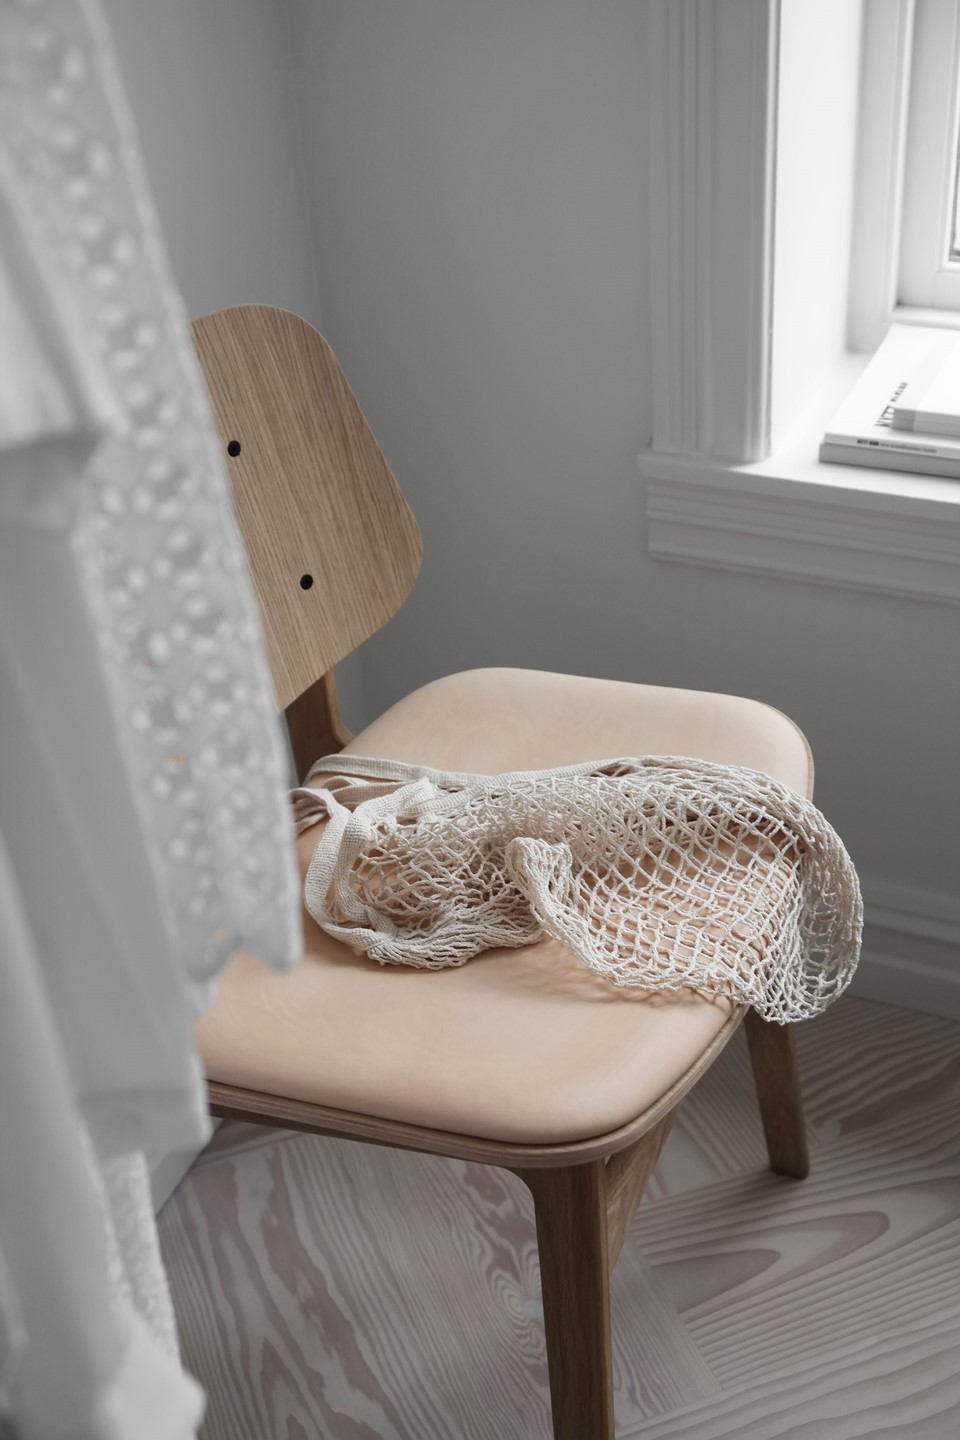 douglas-flooring-herringbone_lye-white-oil_elisabeth-heier_bedroom-chair_dinesen_03.jpg